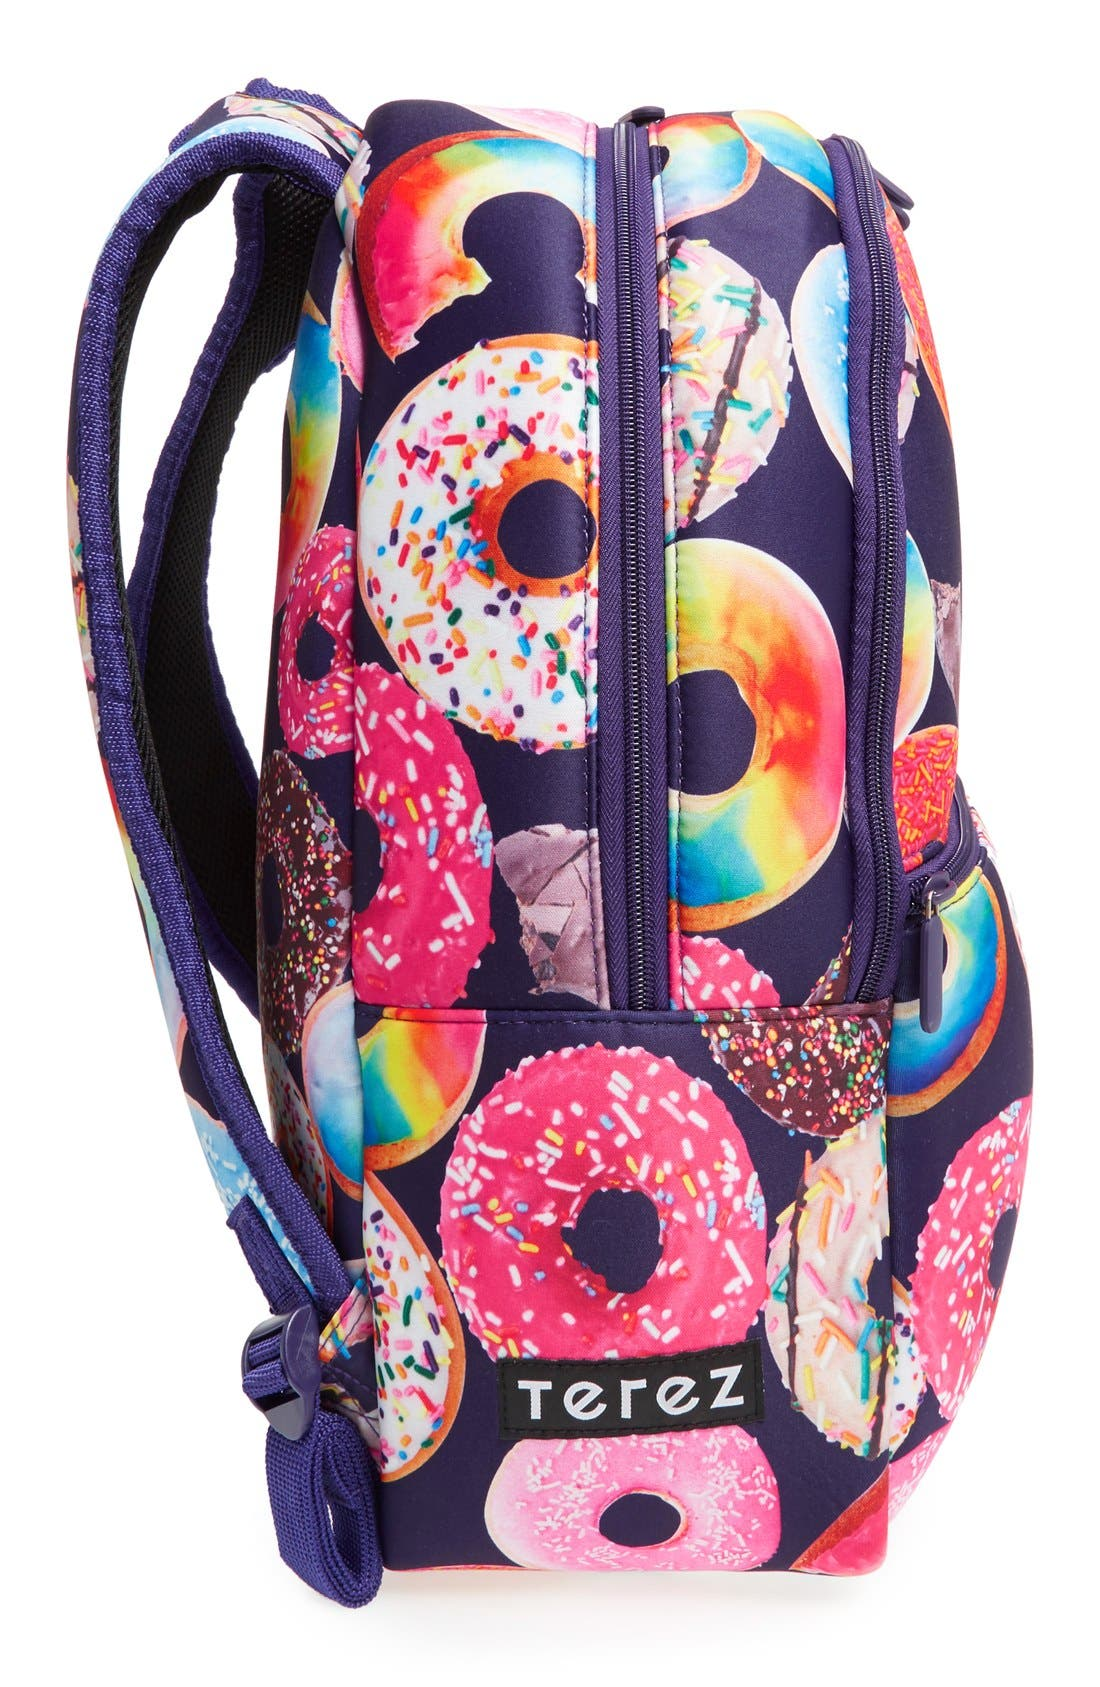 'Donut Shop' Neoprene Backpack,                             Alternate thumbnail 4, color,                             001